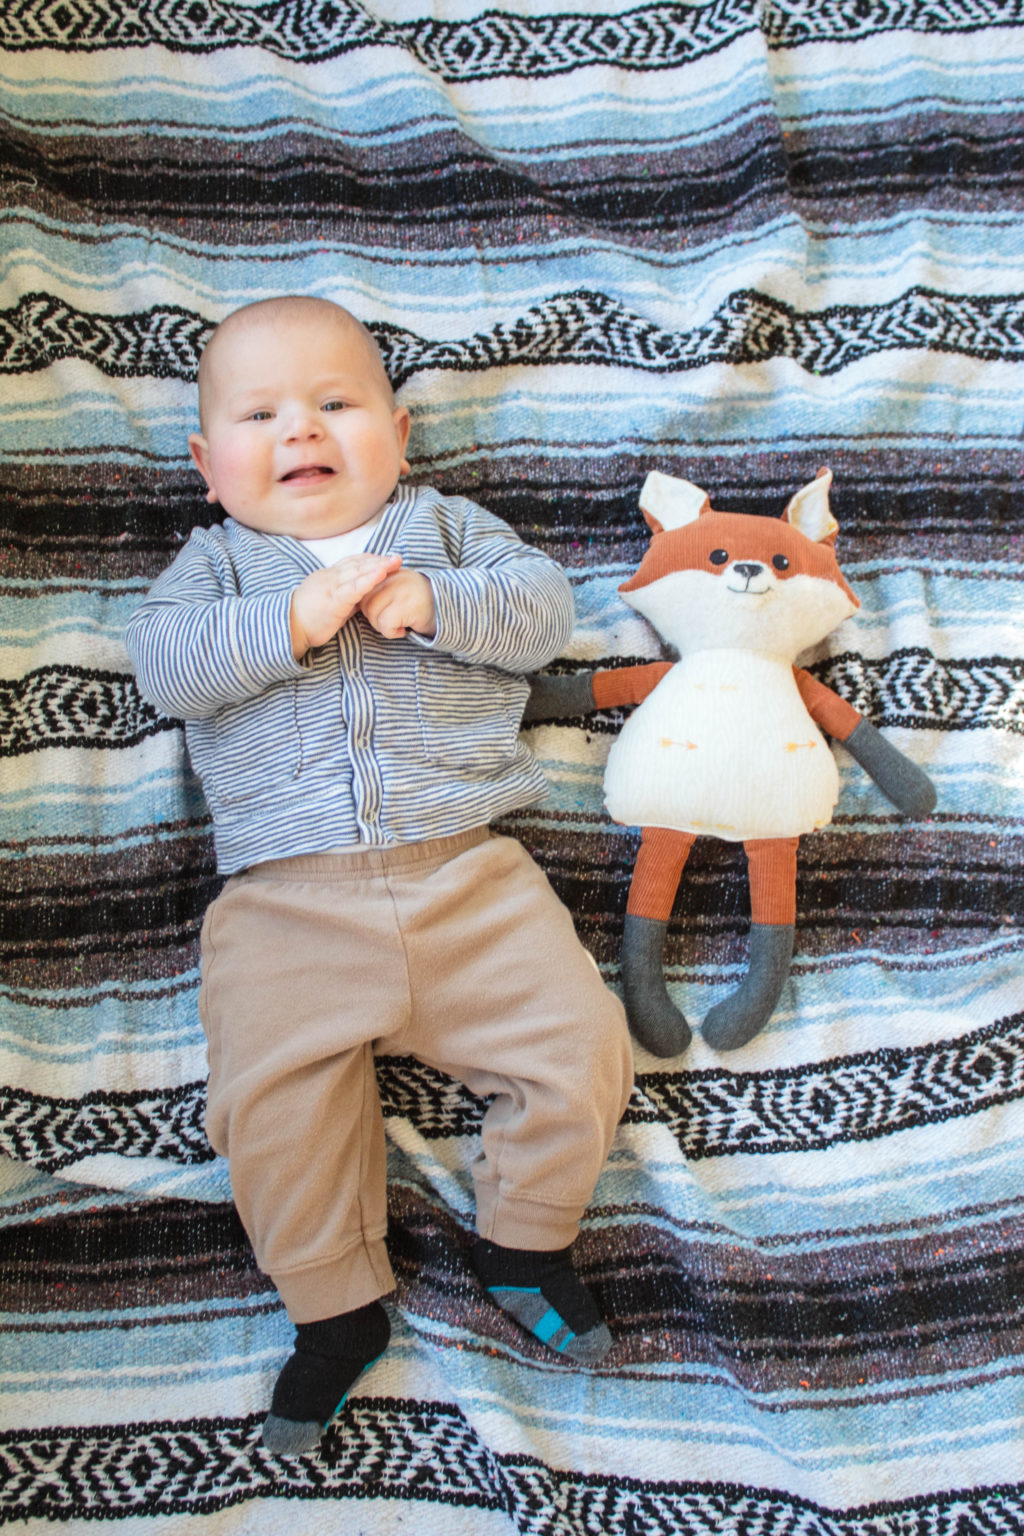 A Baby next to a stuffed animal is a perfect way to measure the baby's monthly size!